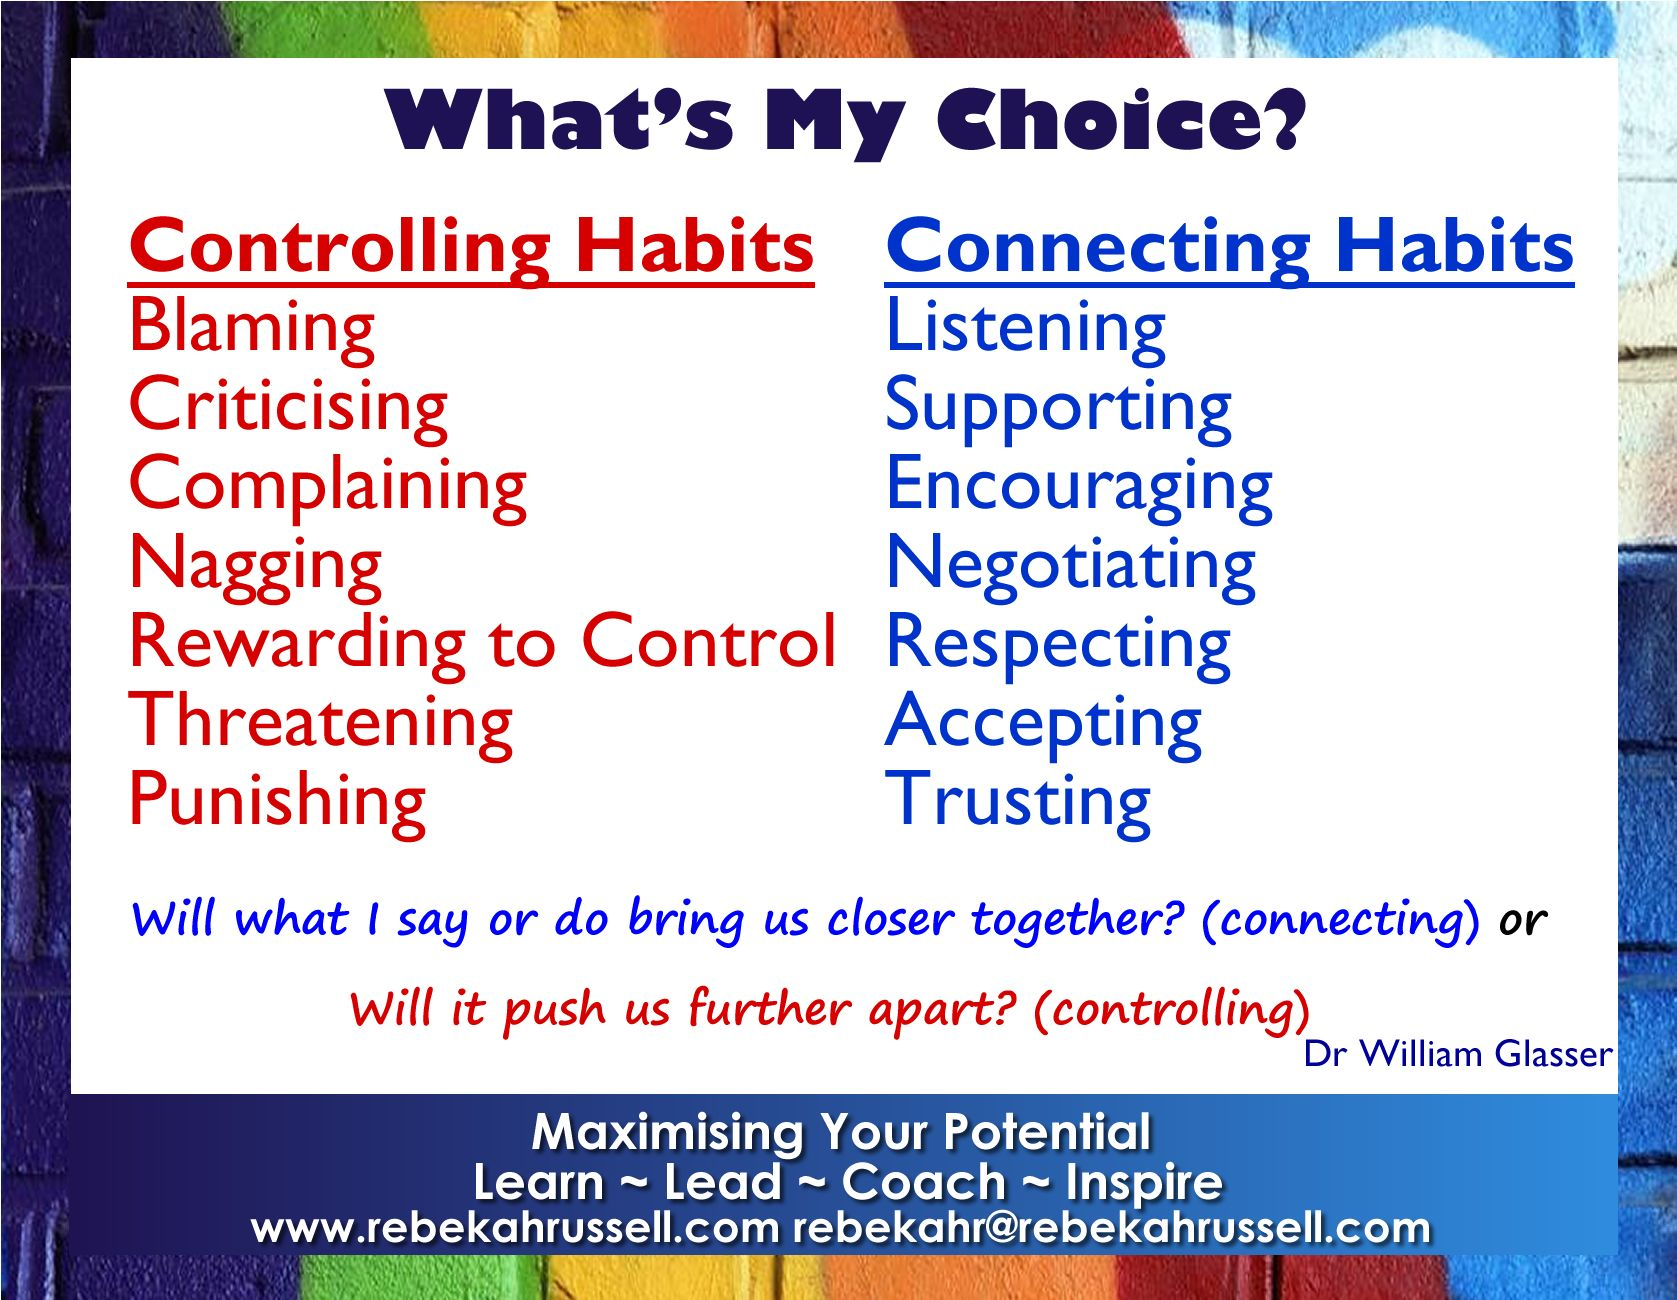 Controlling And Connecting Habits